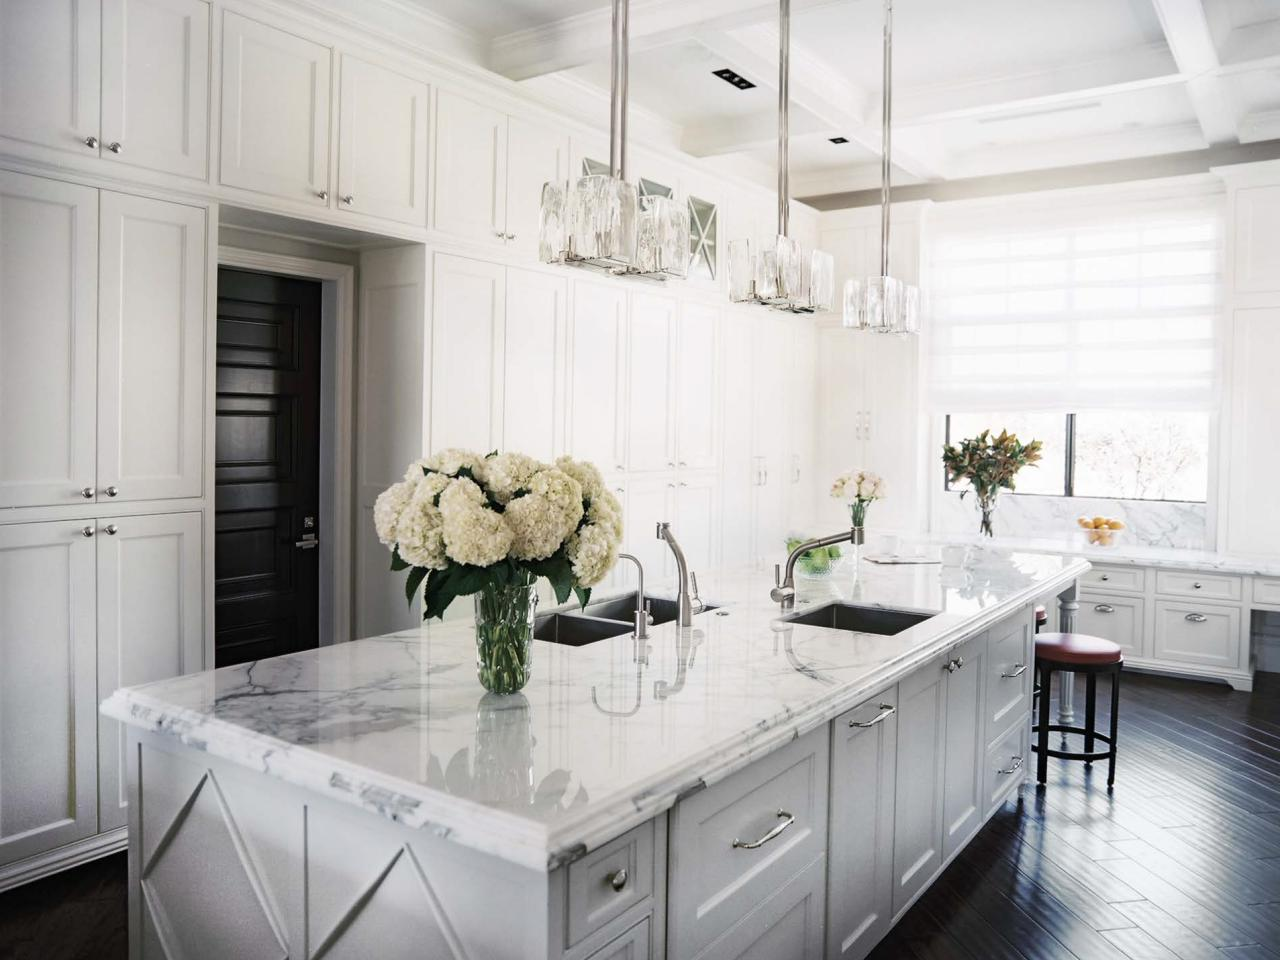 decorate kitchen ceiling lights lowes remodels with white cabinets pictures | roy home ...